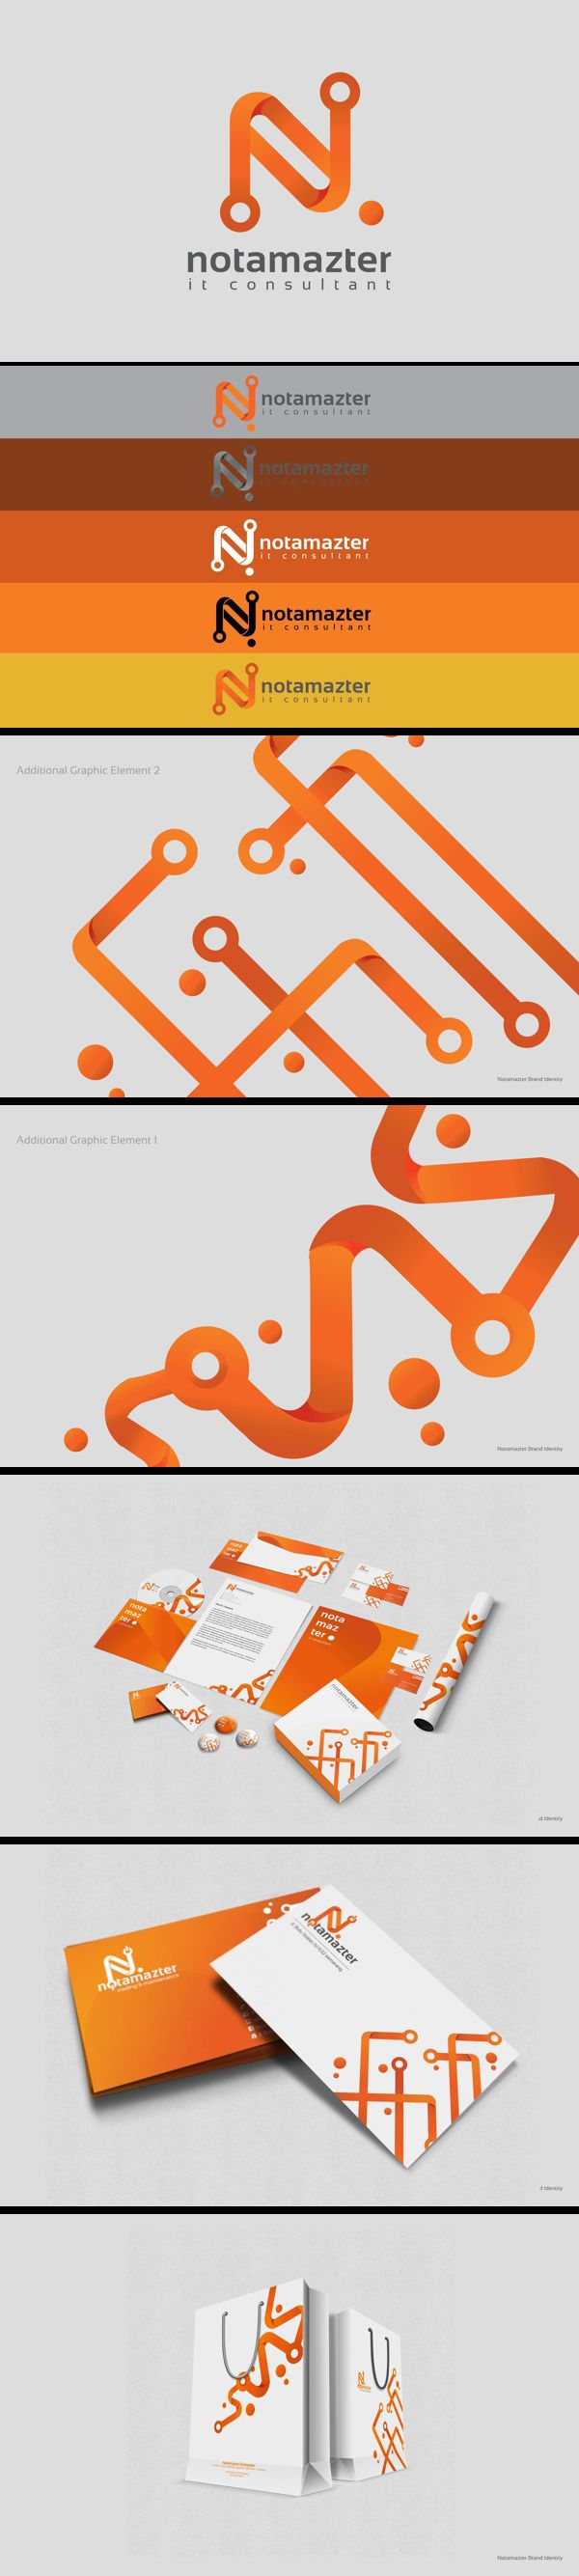 identity / notamazter | #stationary #corporate #design #corporatedesign #identity #branding #marketing < repinned by www.BlickeDeeler.de | Take a look at www.LogoGestaltung-Hamburg.de